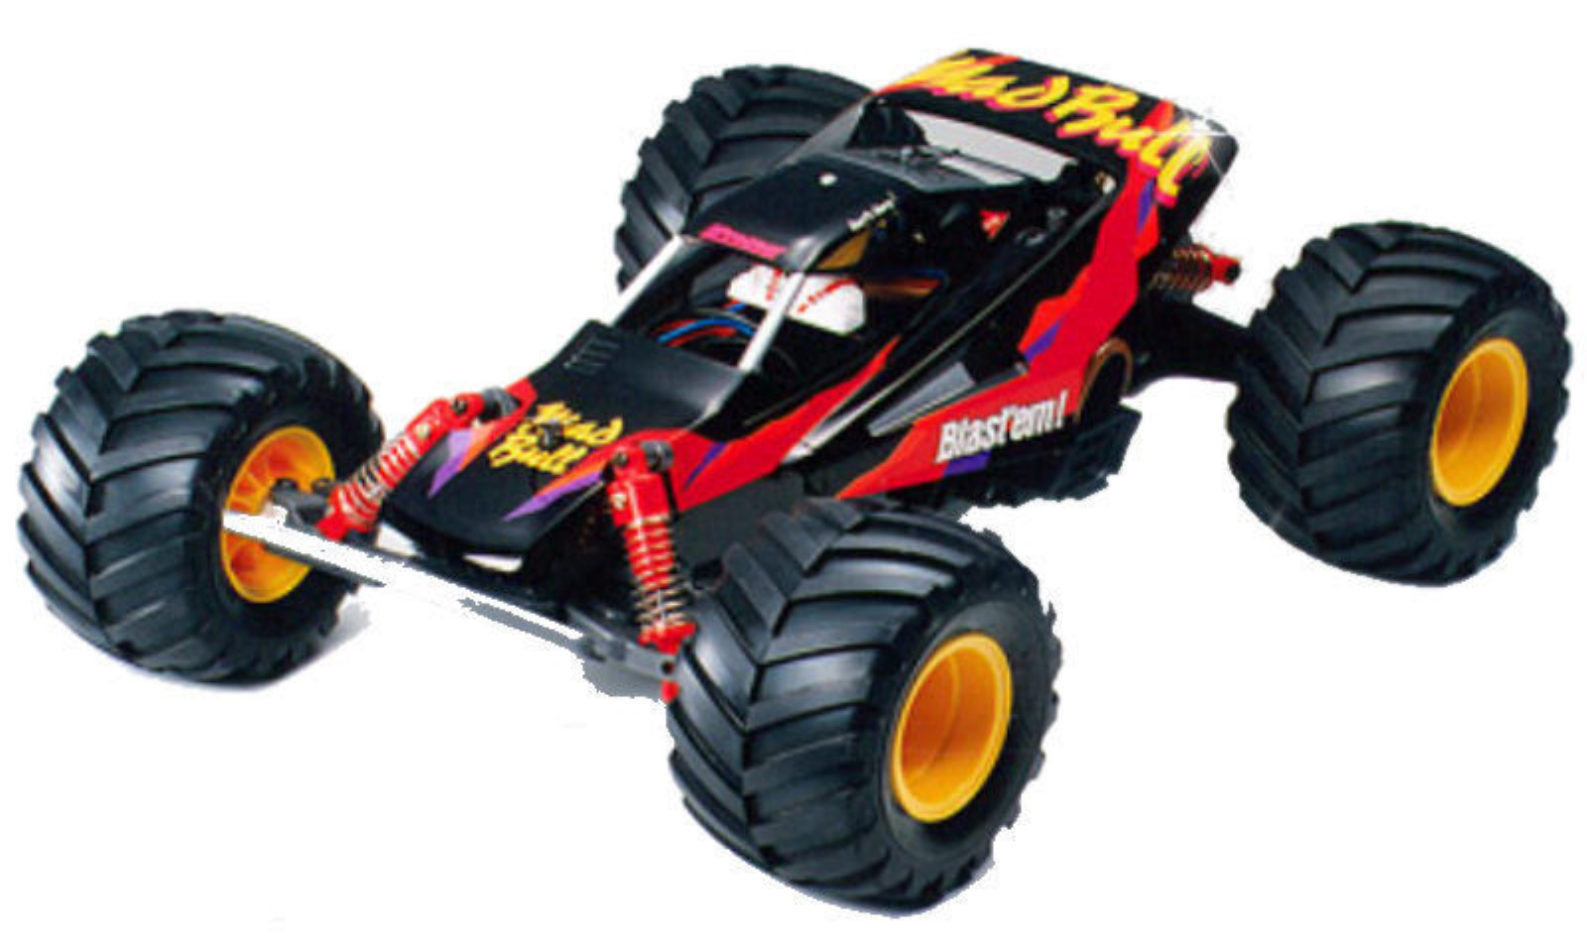 tamiya mad bull 2wd monster rc buggy elektro 1 10 58205. Black Bedroom Furniture Sets. Home Design Ideas